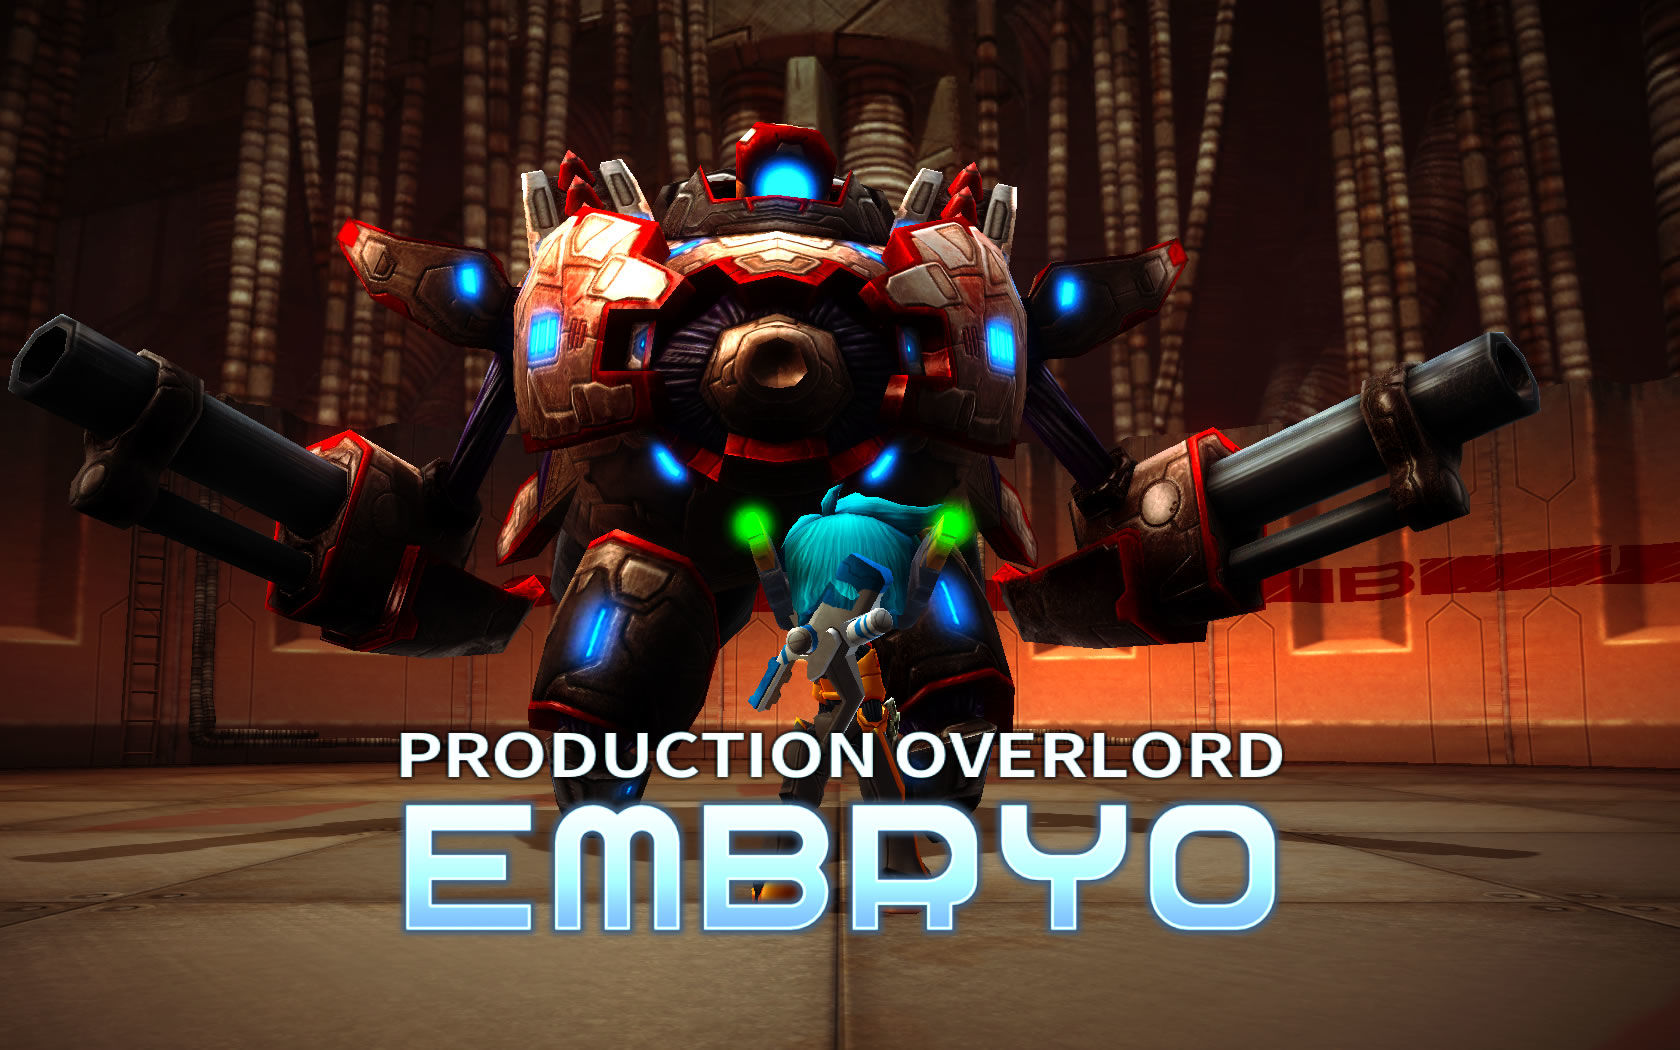 Assault Android Cactus Windows The introduction of Embryo, the first Section Lord